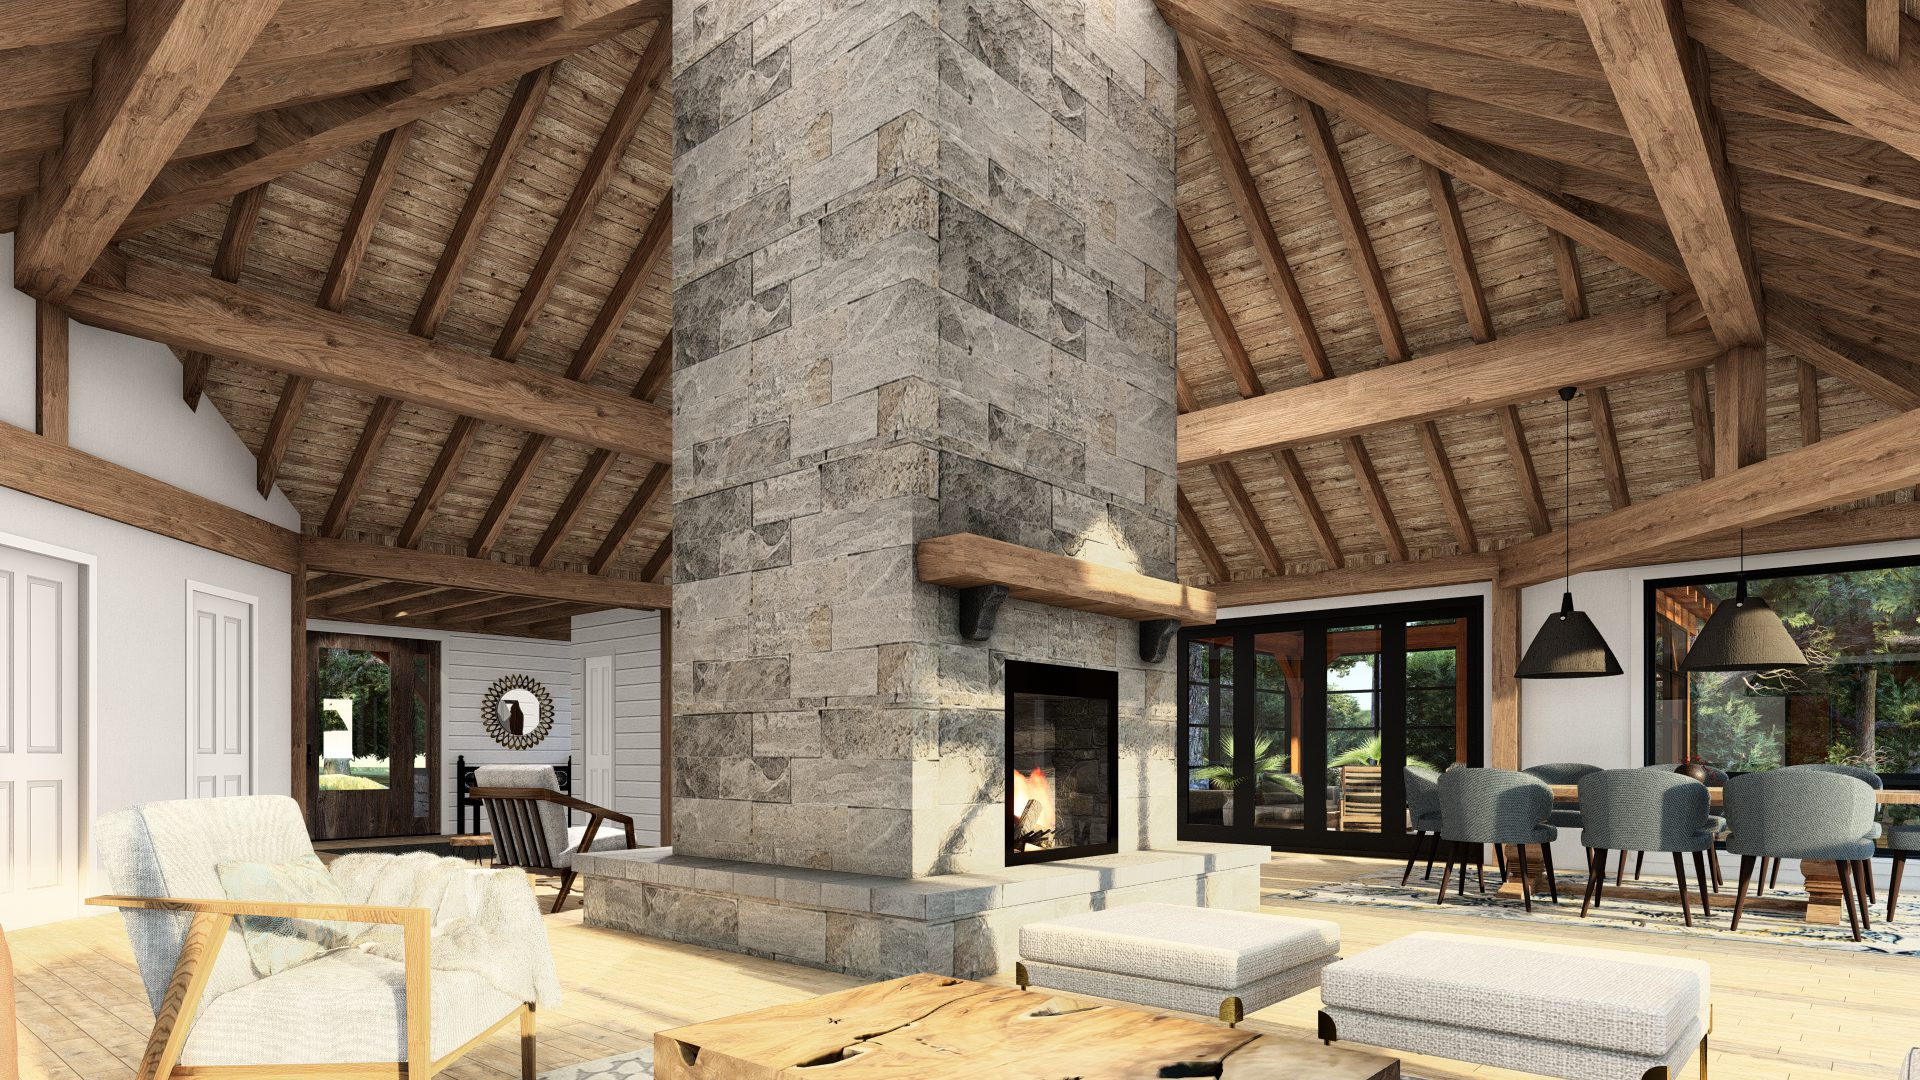 Normerica Timber Frames, House Plan, The Britt 3954, Interior, Living Room, Dining Room, Fireplace